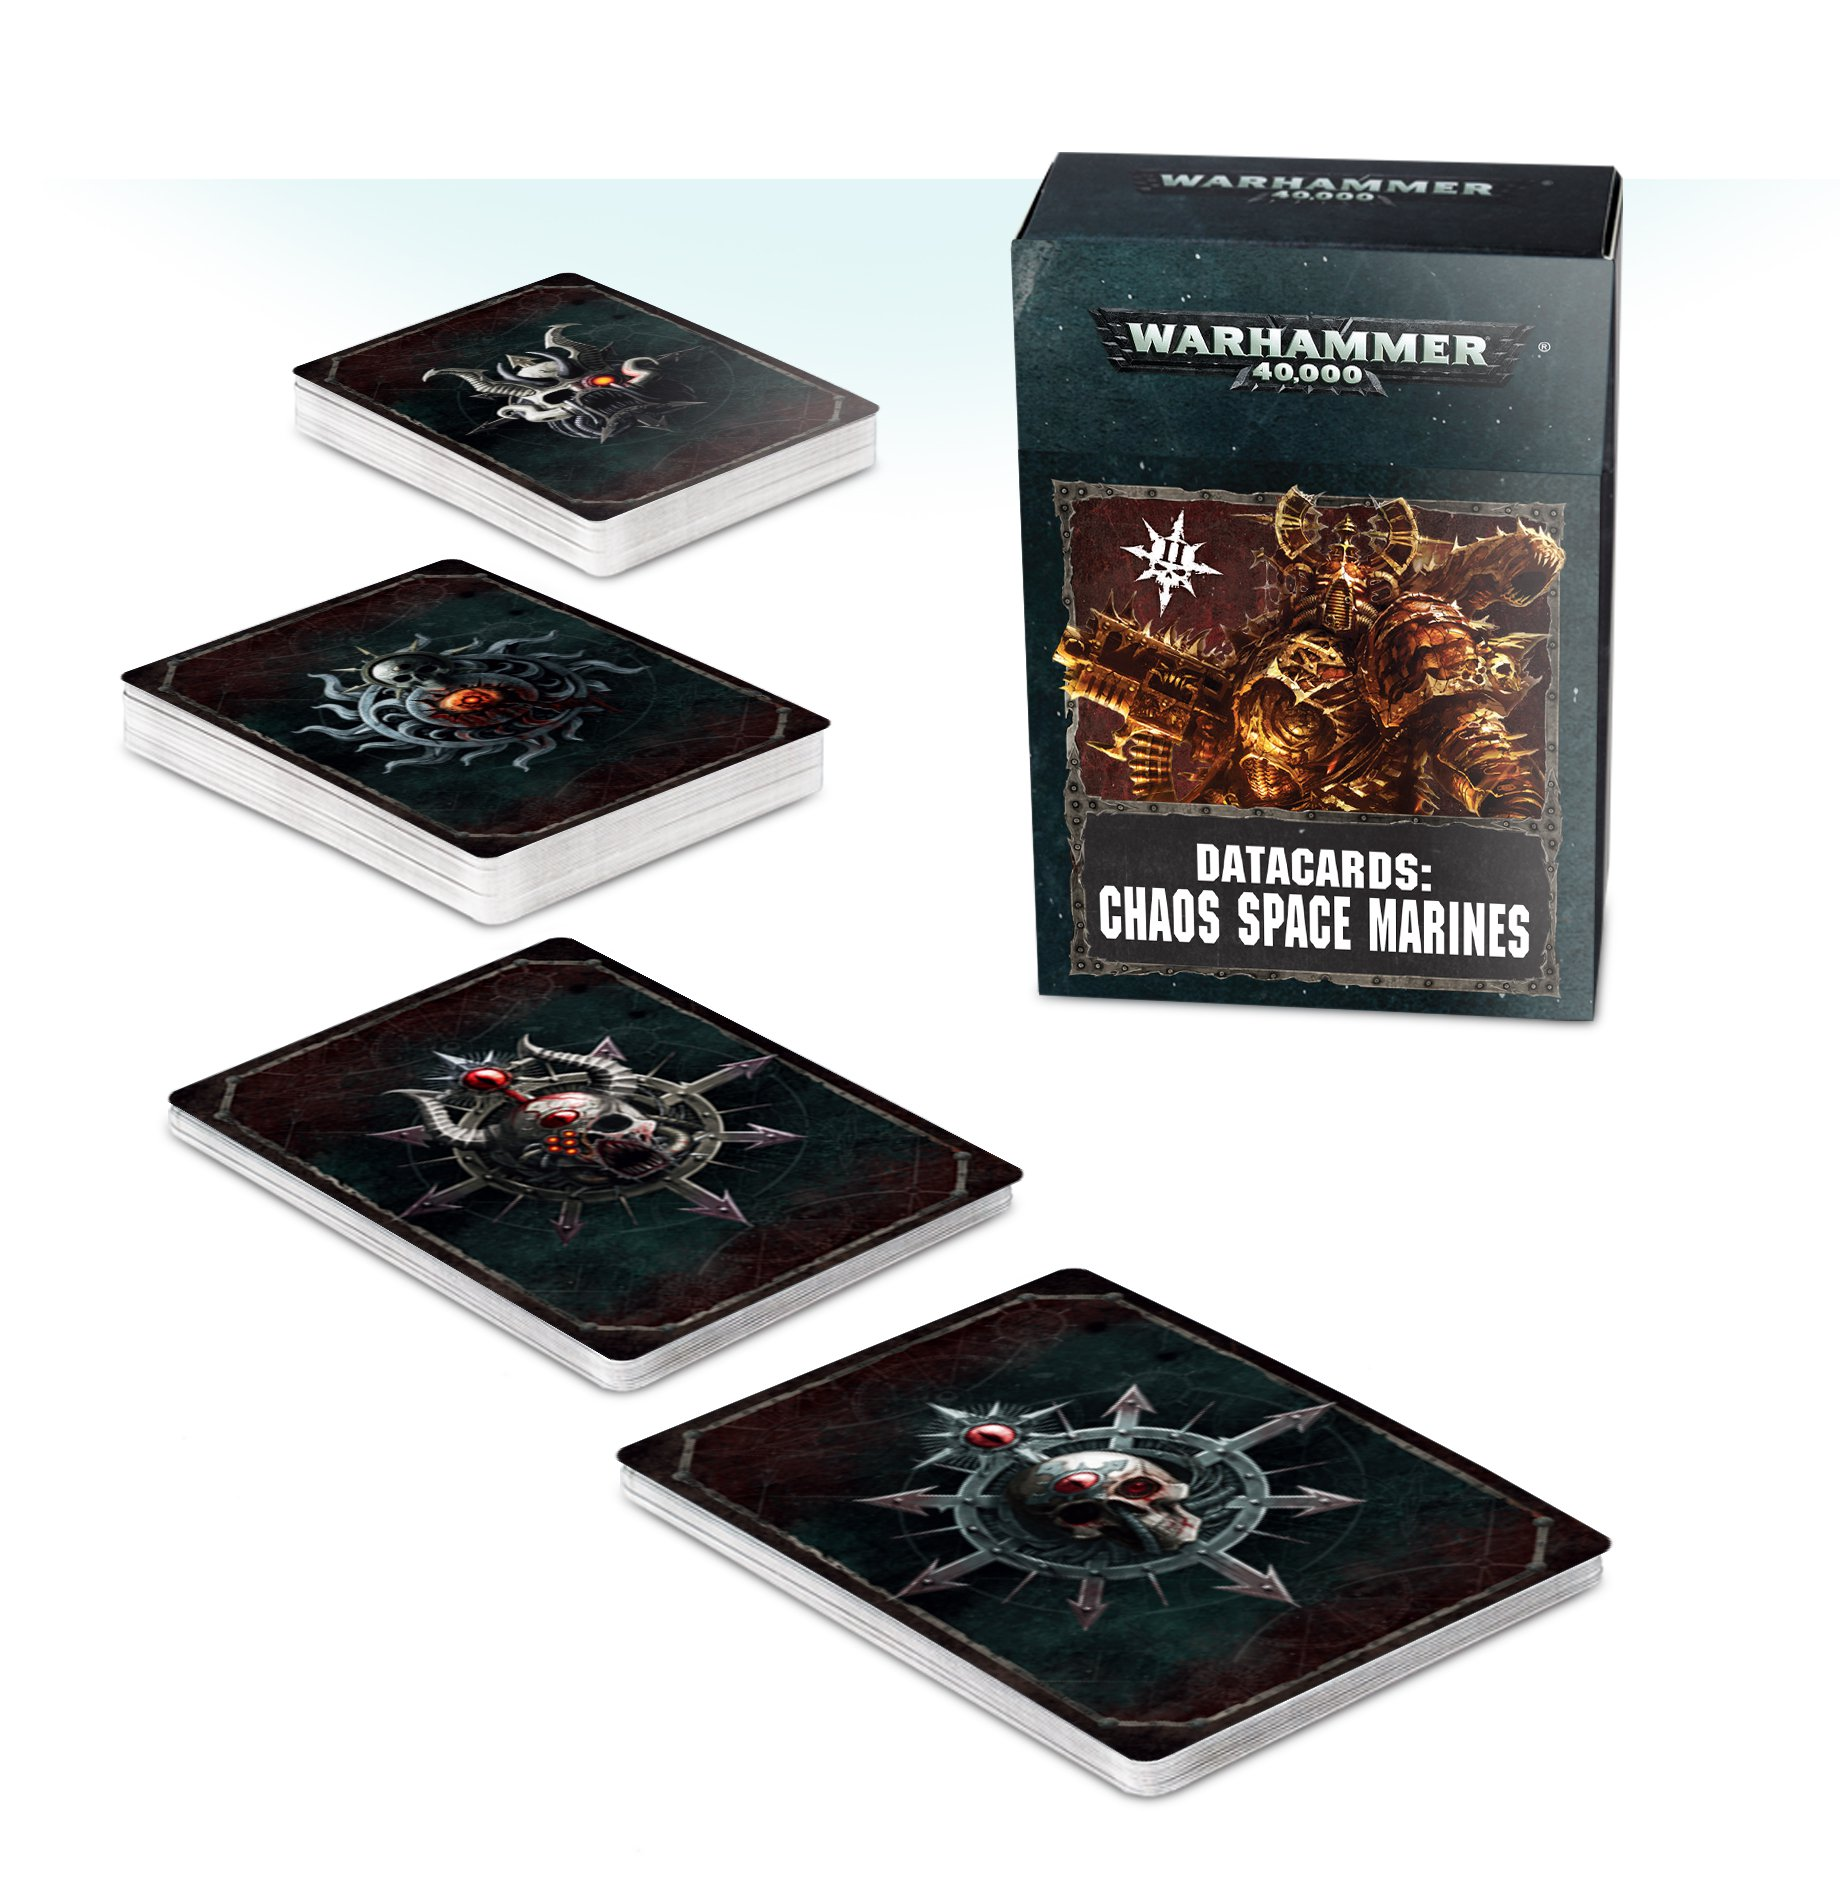 Datacards: Chaos Space Marines (2019)